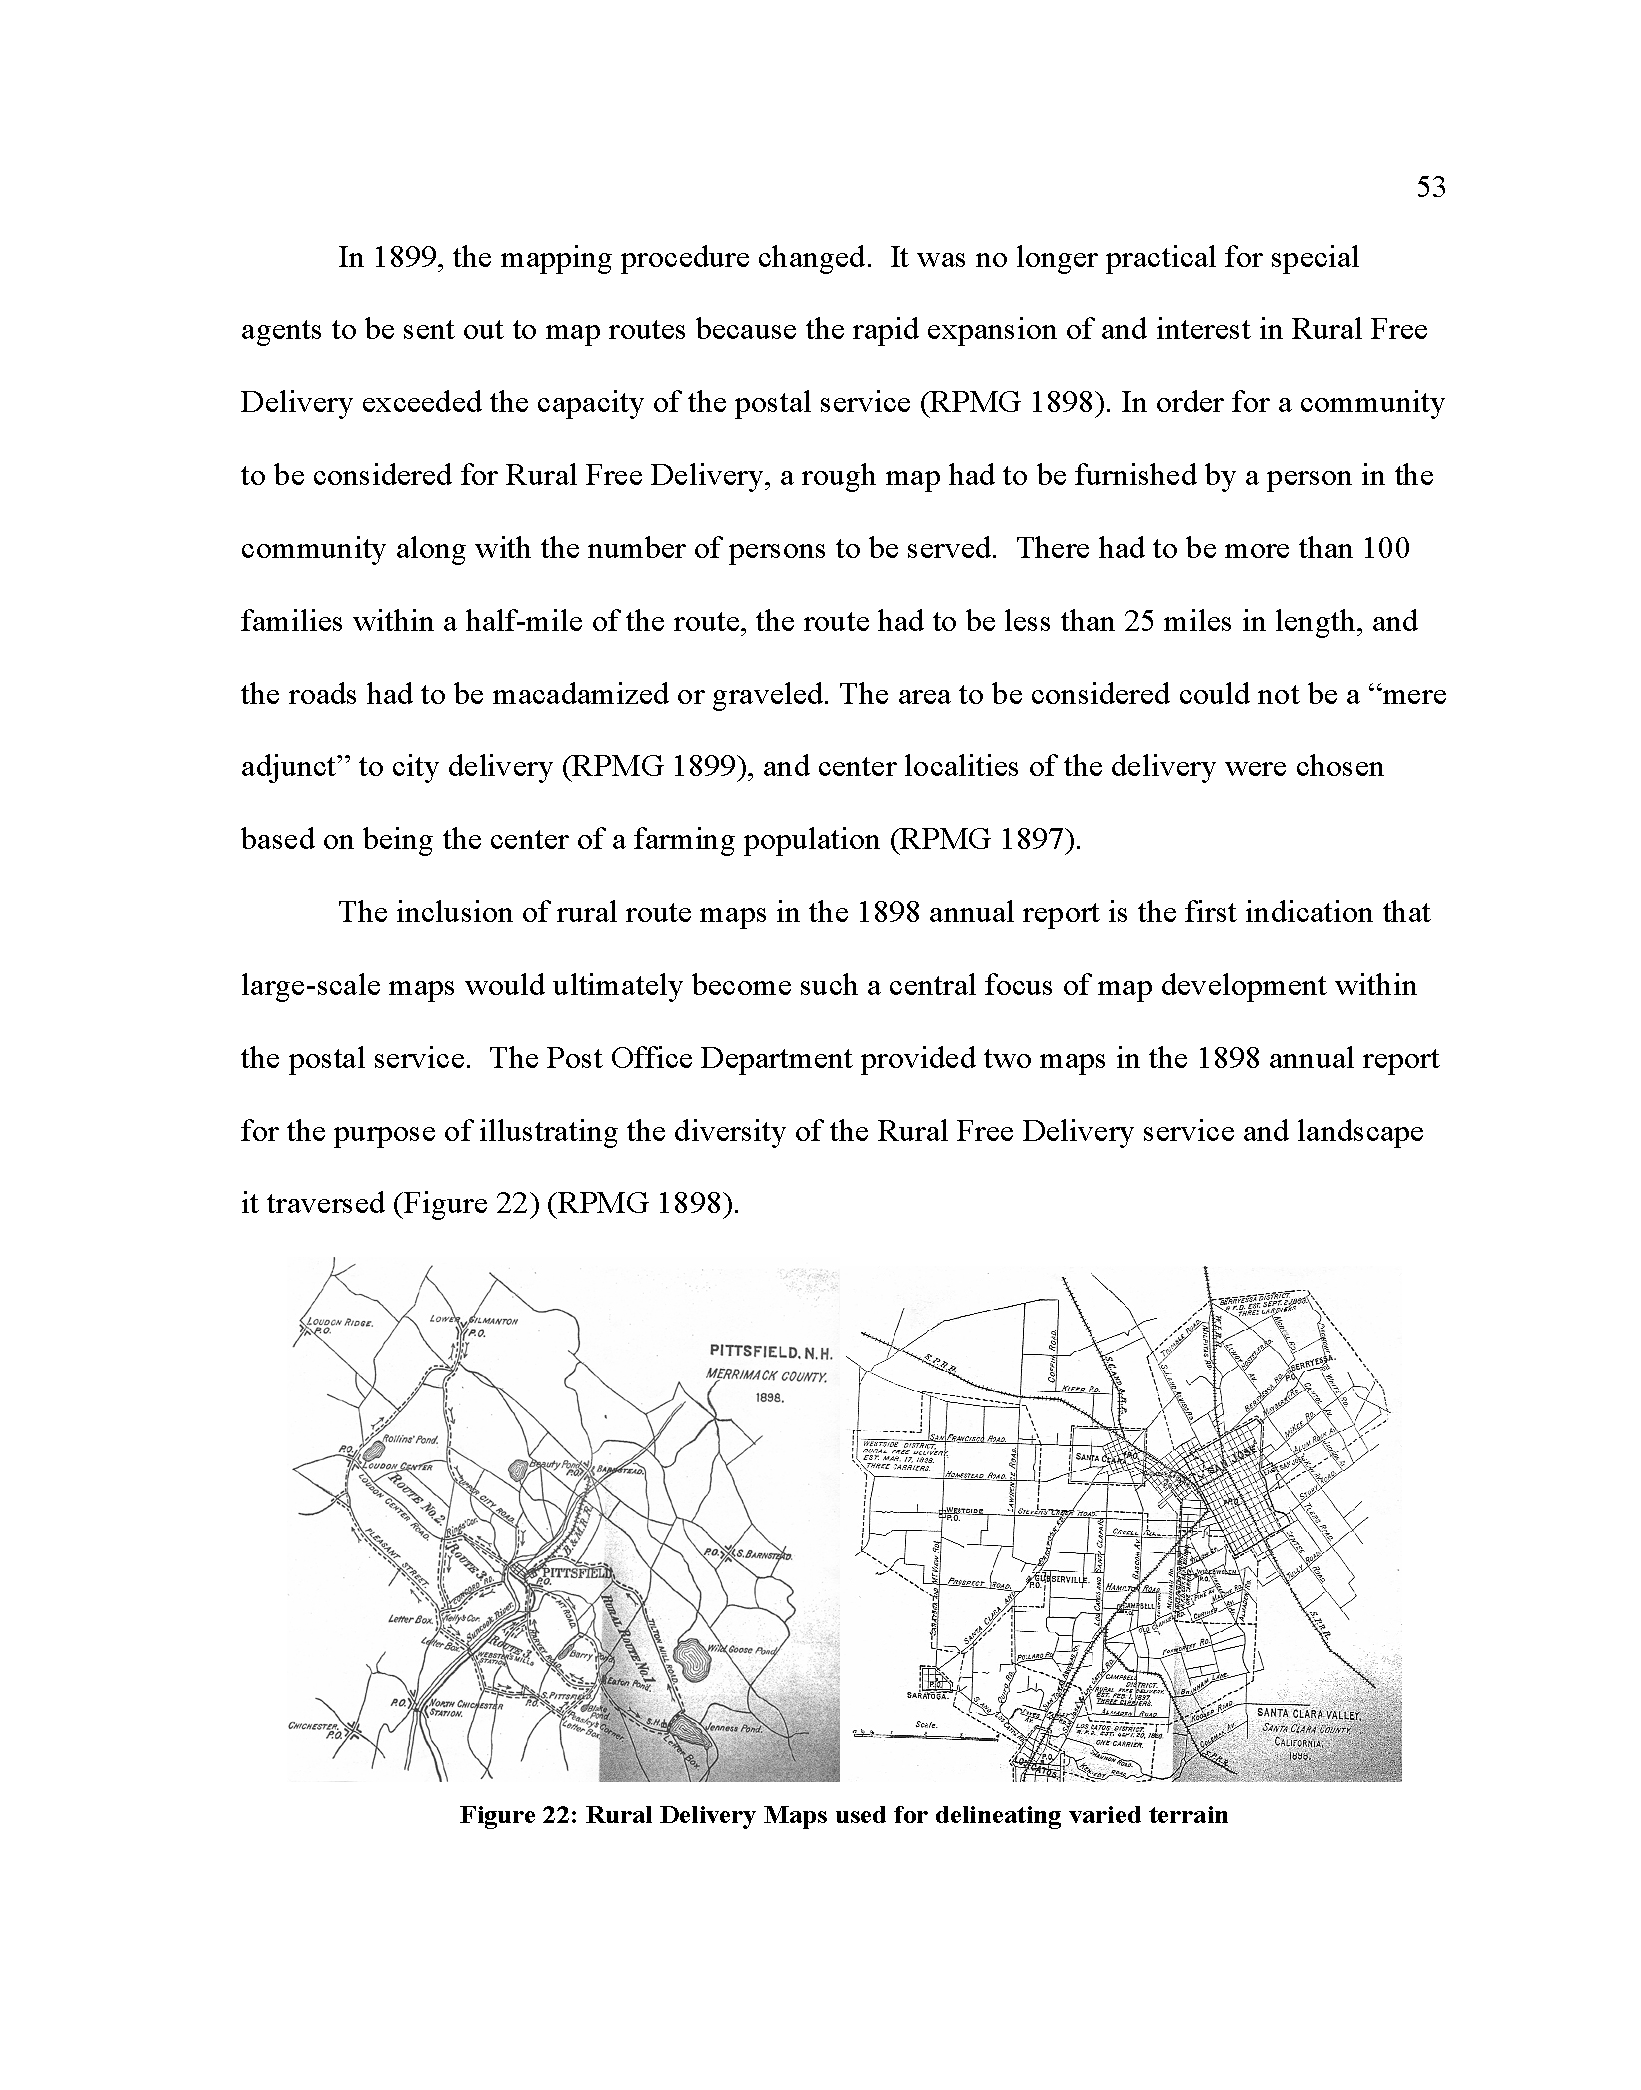 Thesis Final_Page_057.png